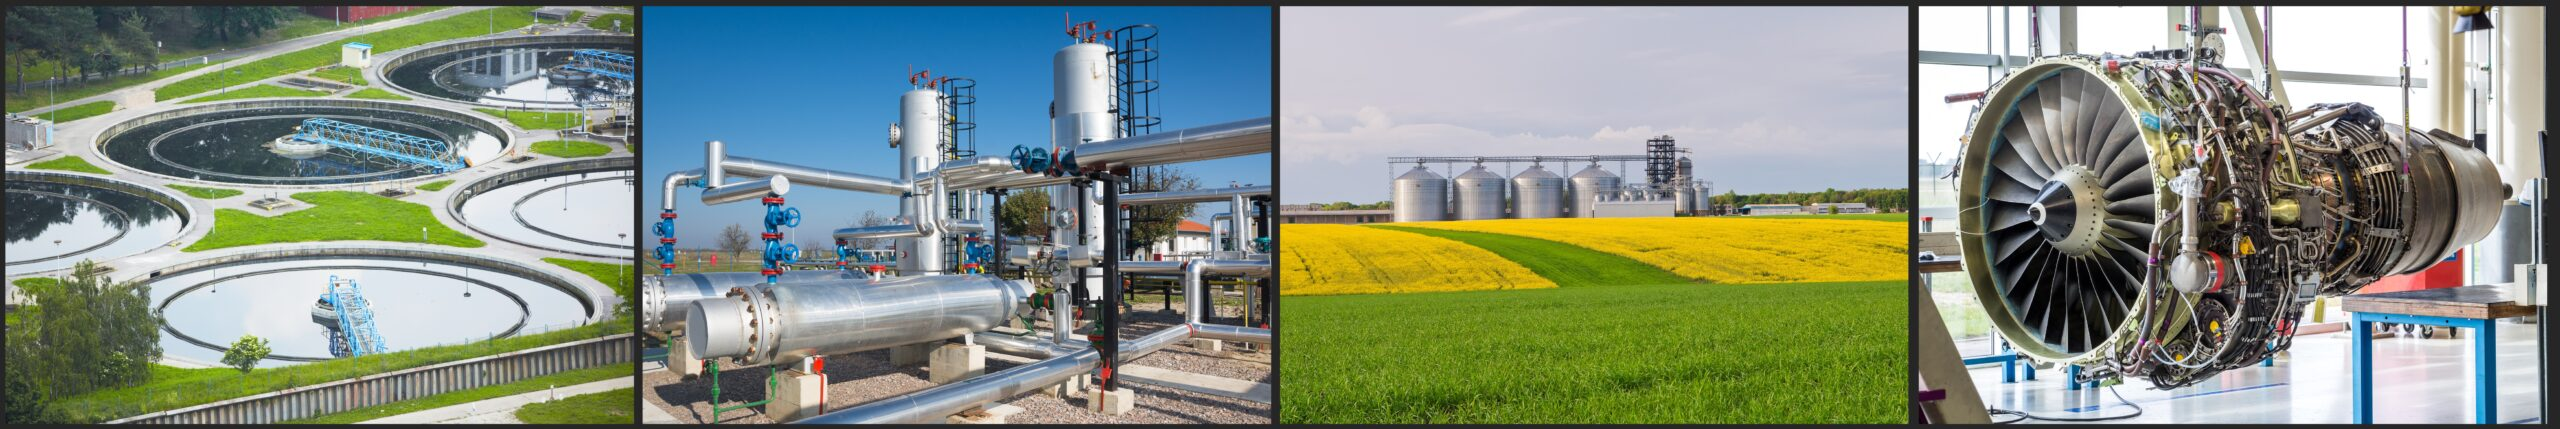 <p>Impel Systems provides complete automation solutions: the design, engineering, programming, installation, and commissioning of turbine, process, and cross platform control systems. Our experience is diverse and includes projects in the oil and gas, agriculture, municipal, and food and beverage industries.</p>